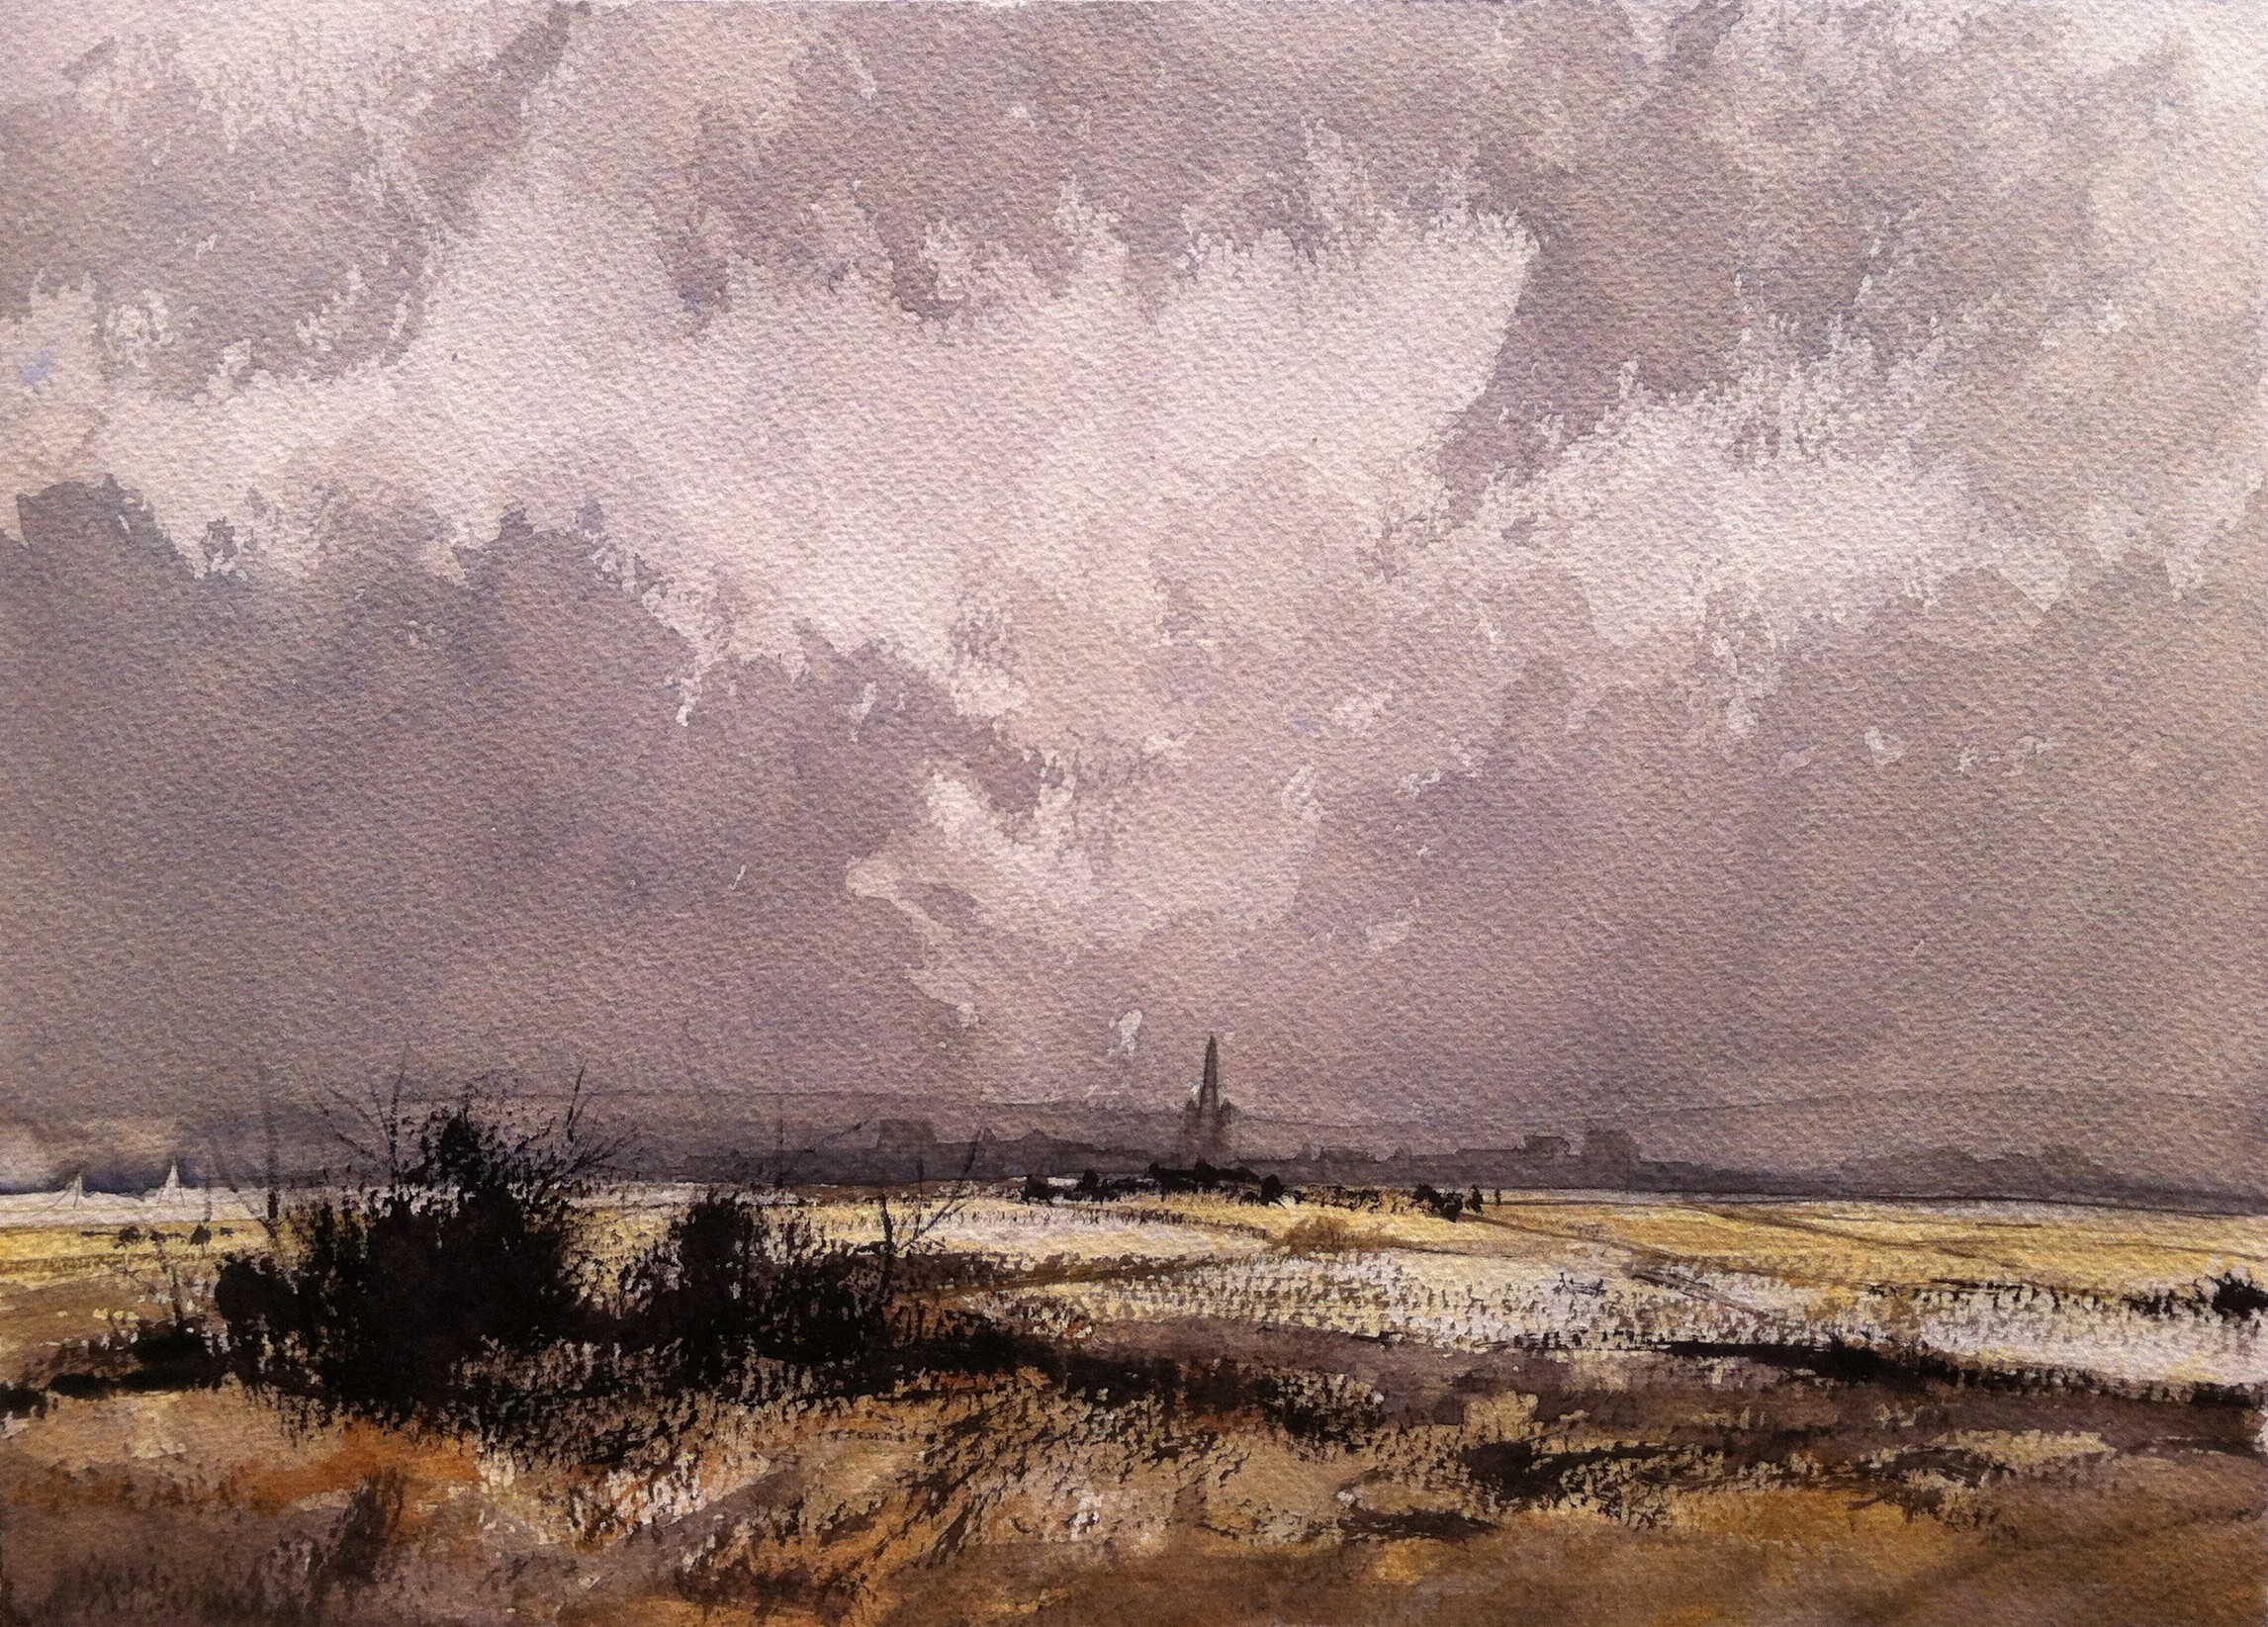 Roland Hilder study using Winsor and Newton Professional paints. Painted on Bockingford 140gsm rough paper with oatmeal tint,